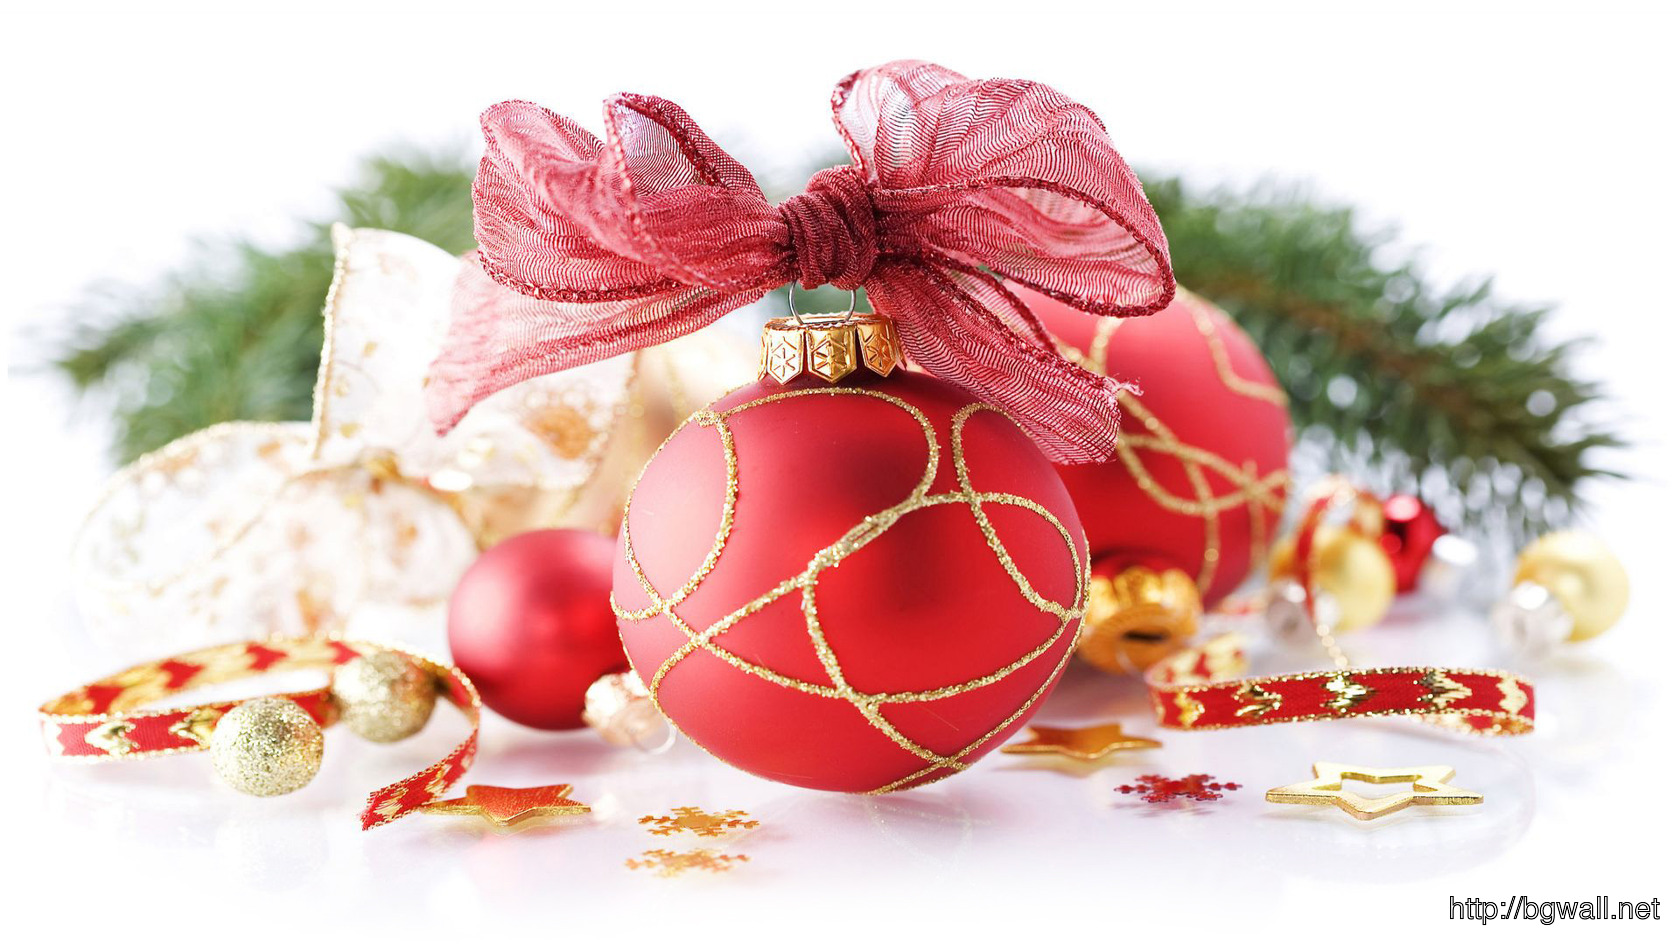 Christmas Ornaments Wallpaper 8059 Full Size